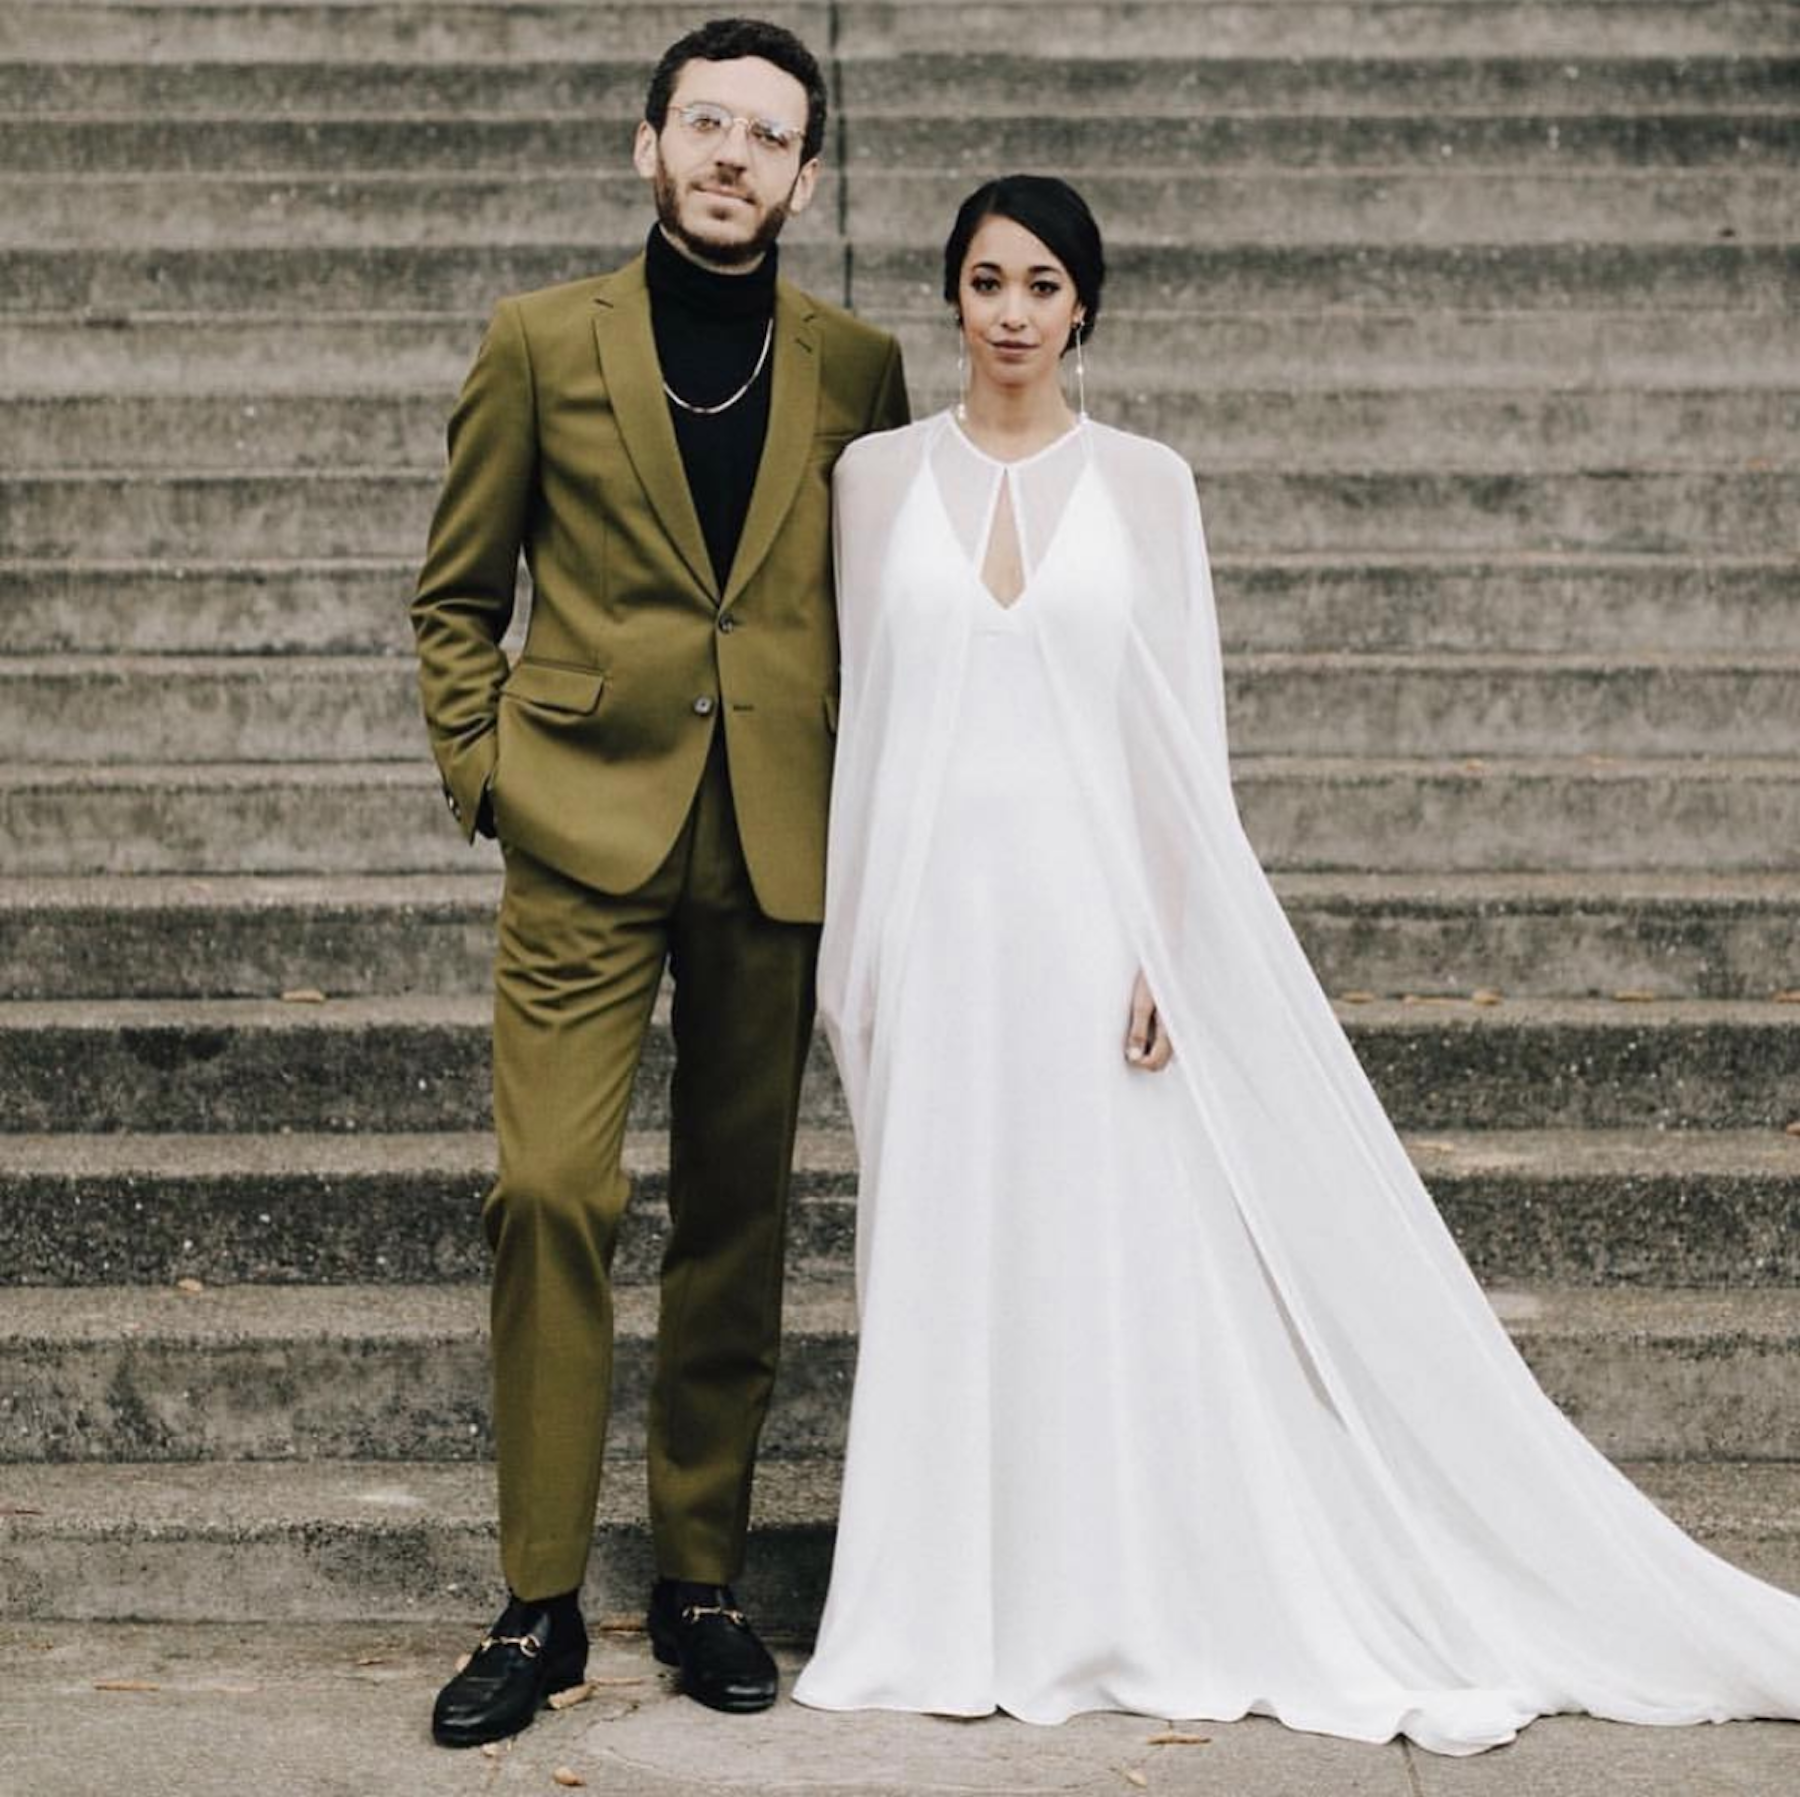 This beautiful bride was simply elegant in Odylyne the Ceremony. - It's safe to say that capes continue to have their moment. We love her groom's super fly green suit!Photo by James Moes.